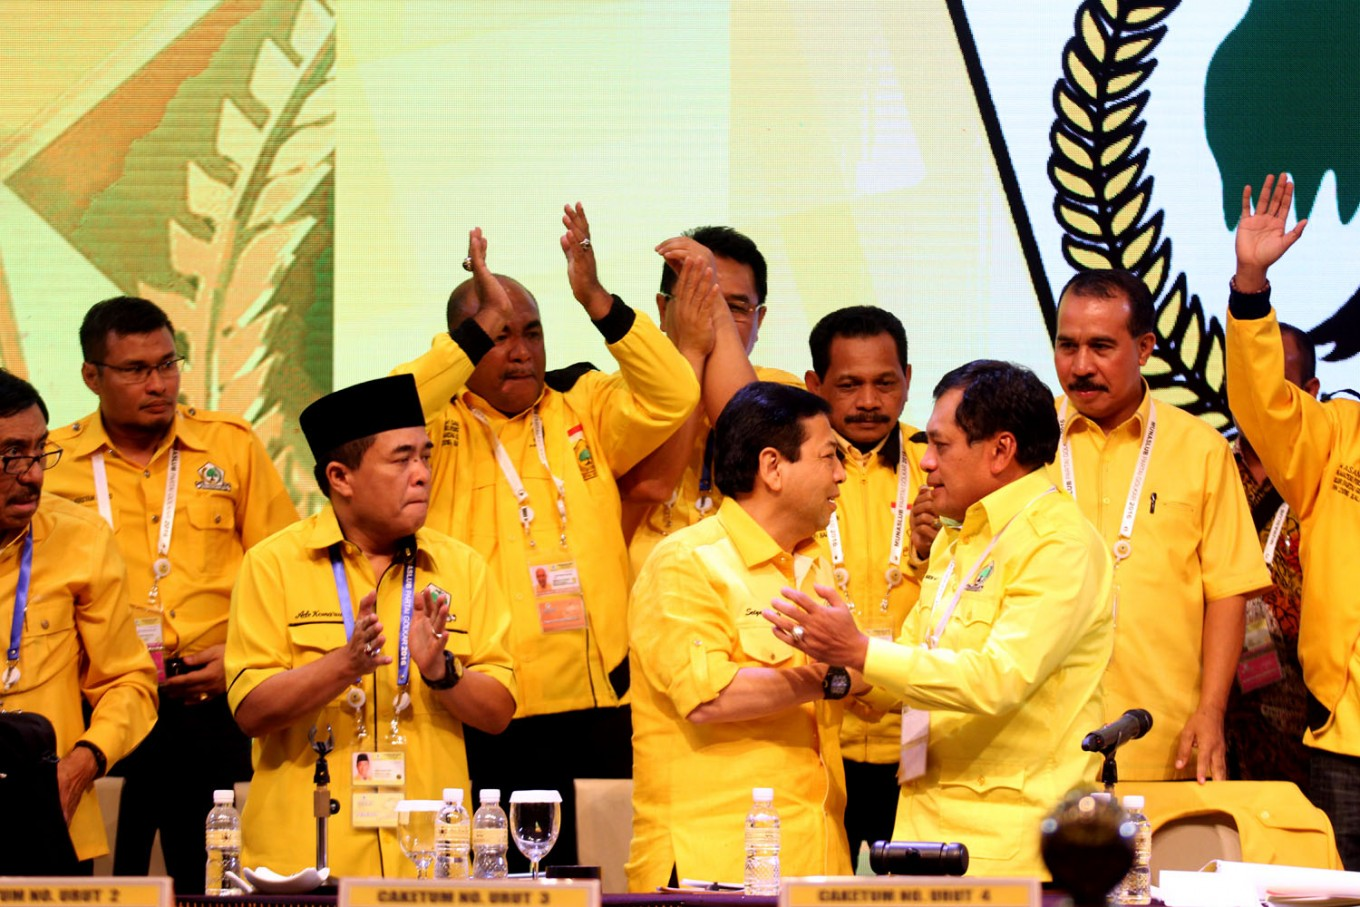 golkar party and the survival of oligarchy opinion the jakarta post